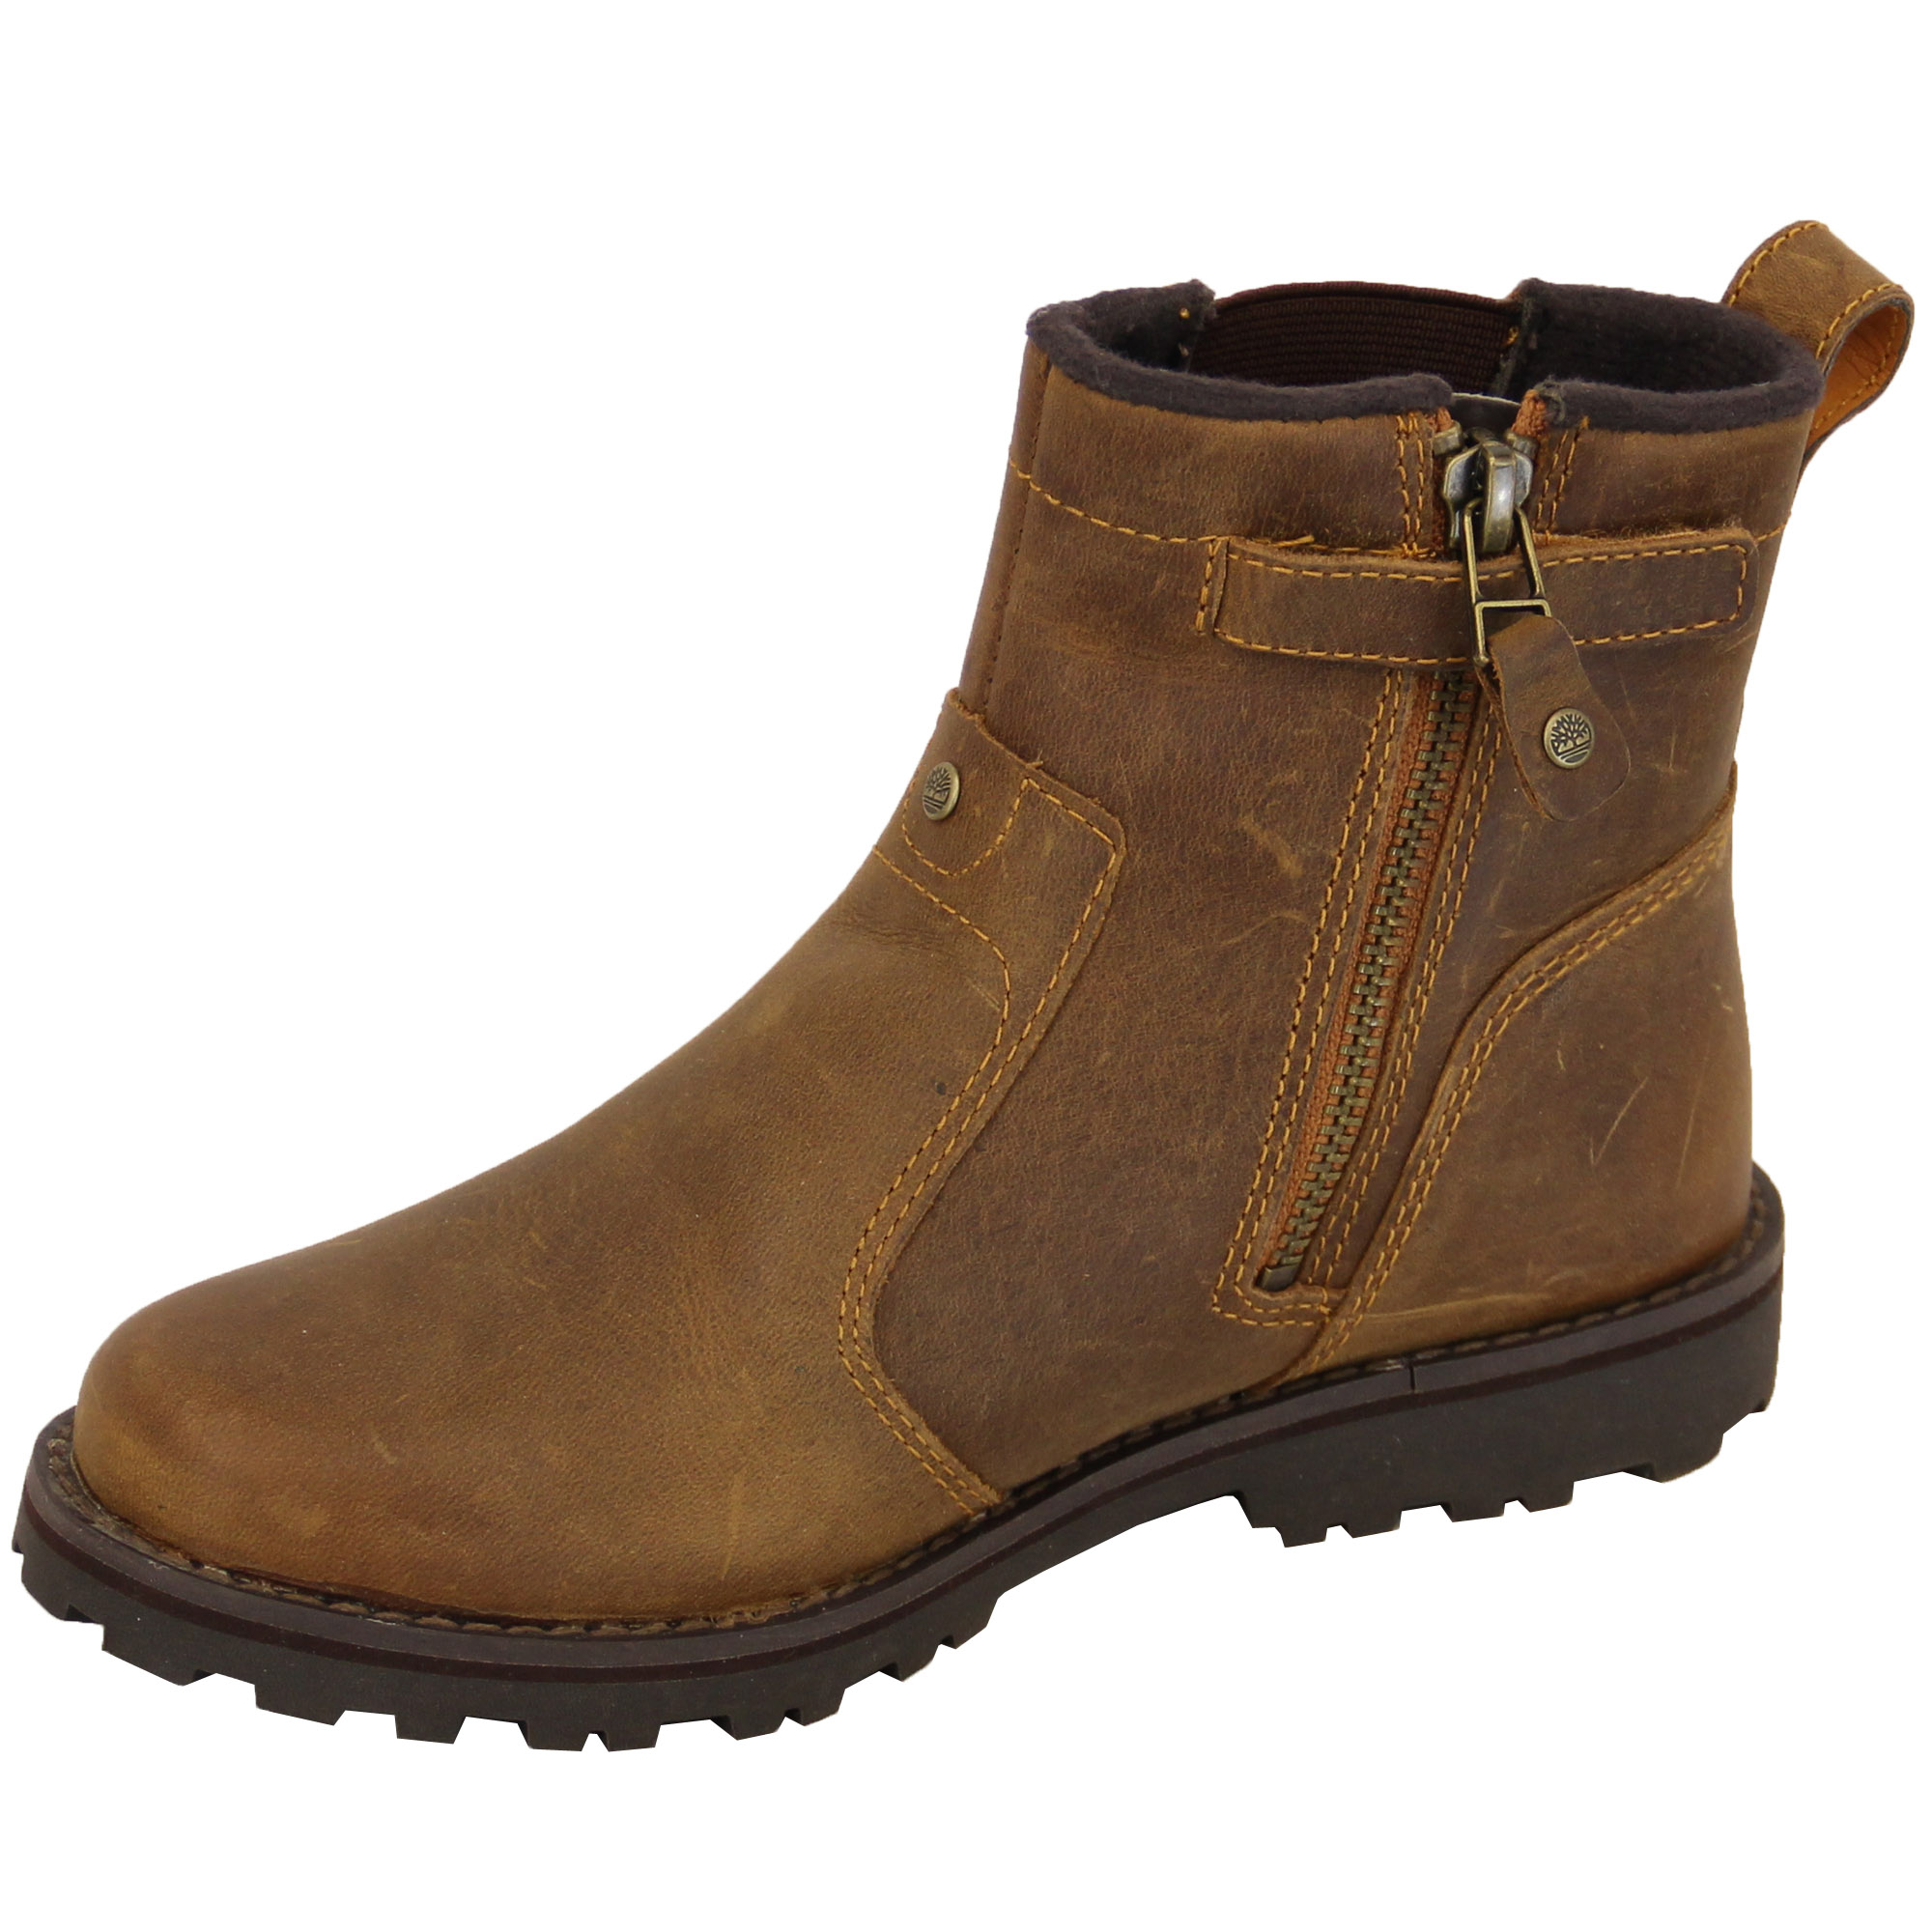 Find great deals on eBay for boys leather ankle boots. Shop with confidence.